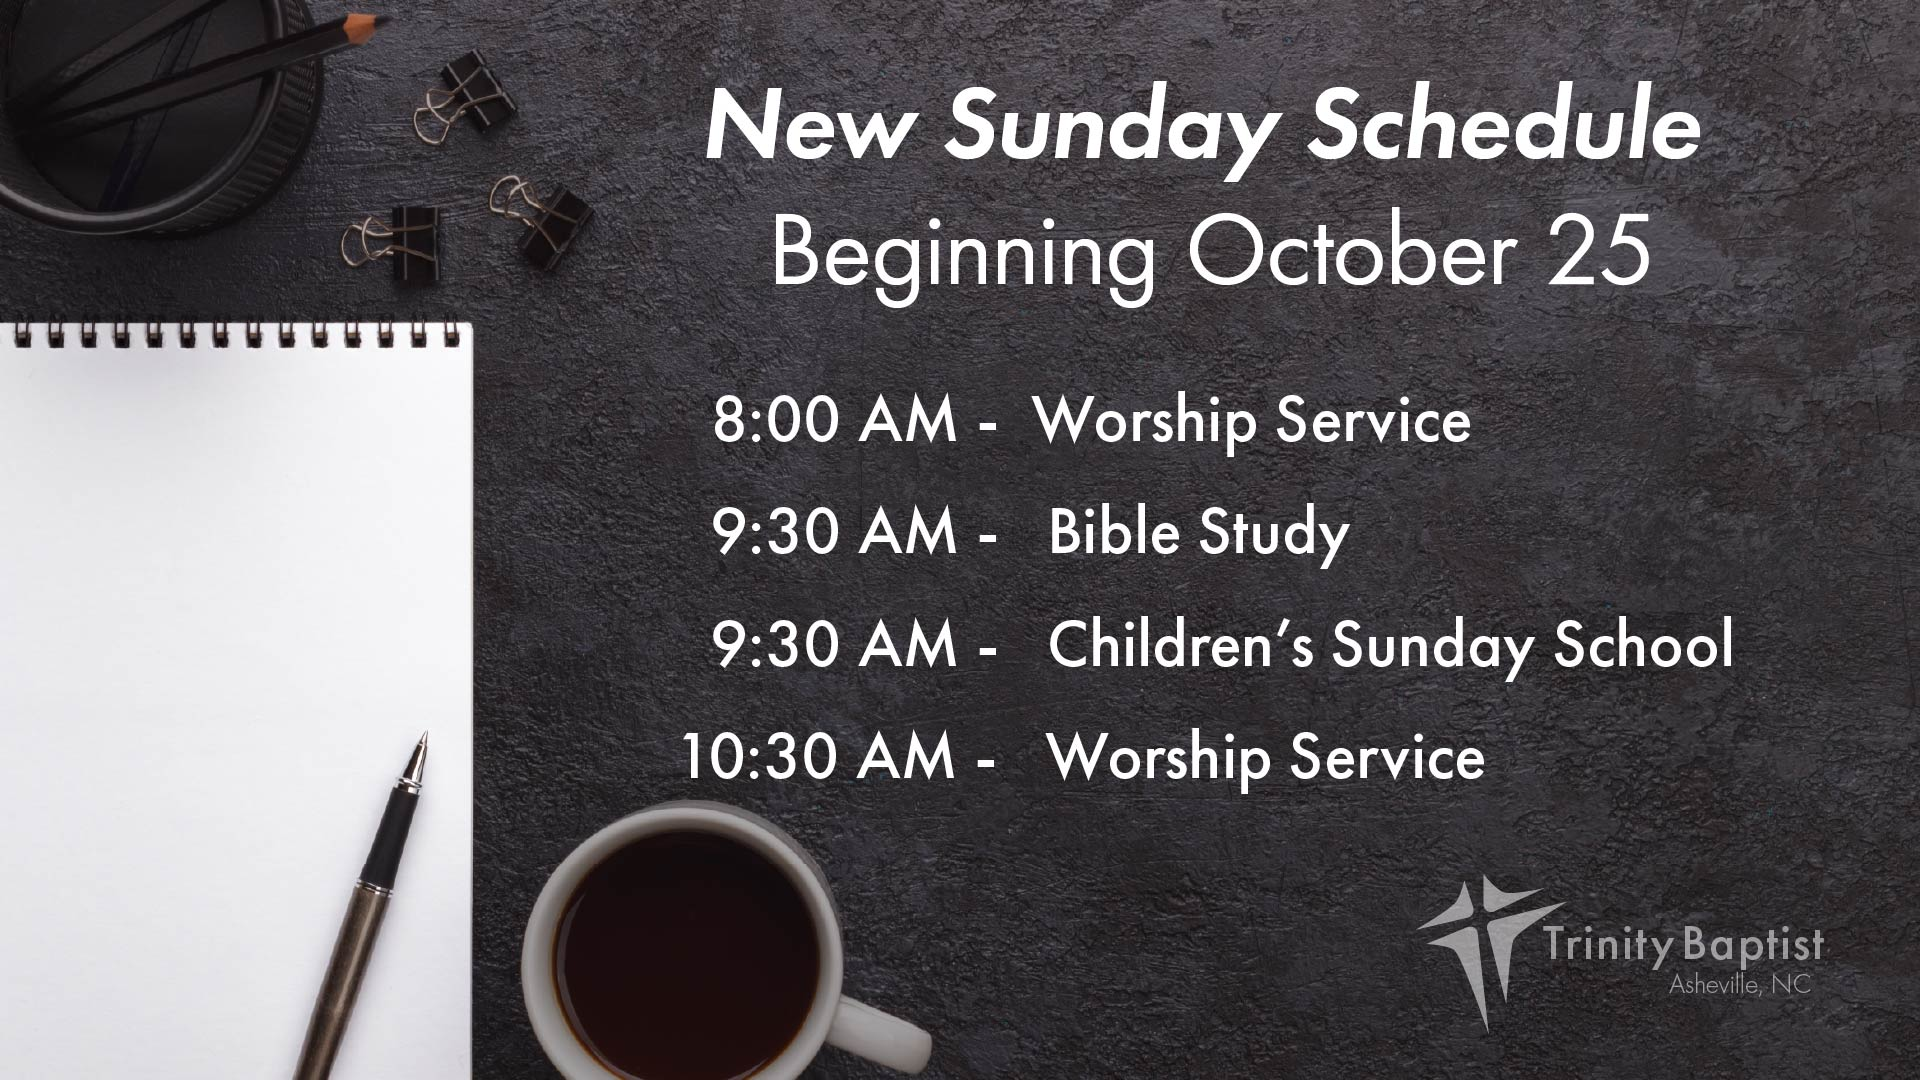 New Sunday Service times. 8:00 AM - Worship Service 9:30 AM - Bible Study 9:30 AM - Children's Sunday School 10:30 AM - Worship Service